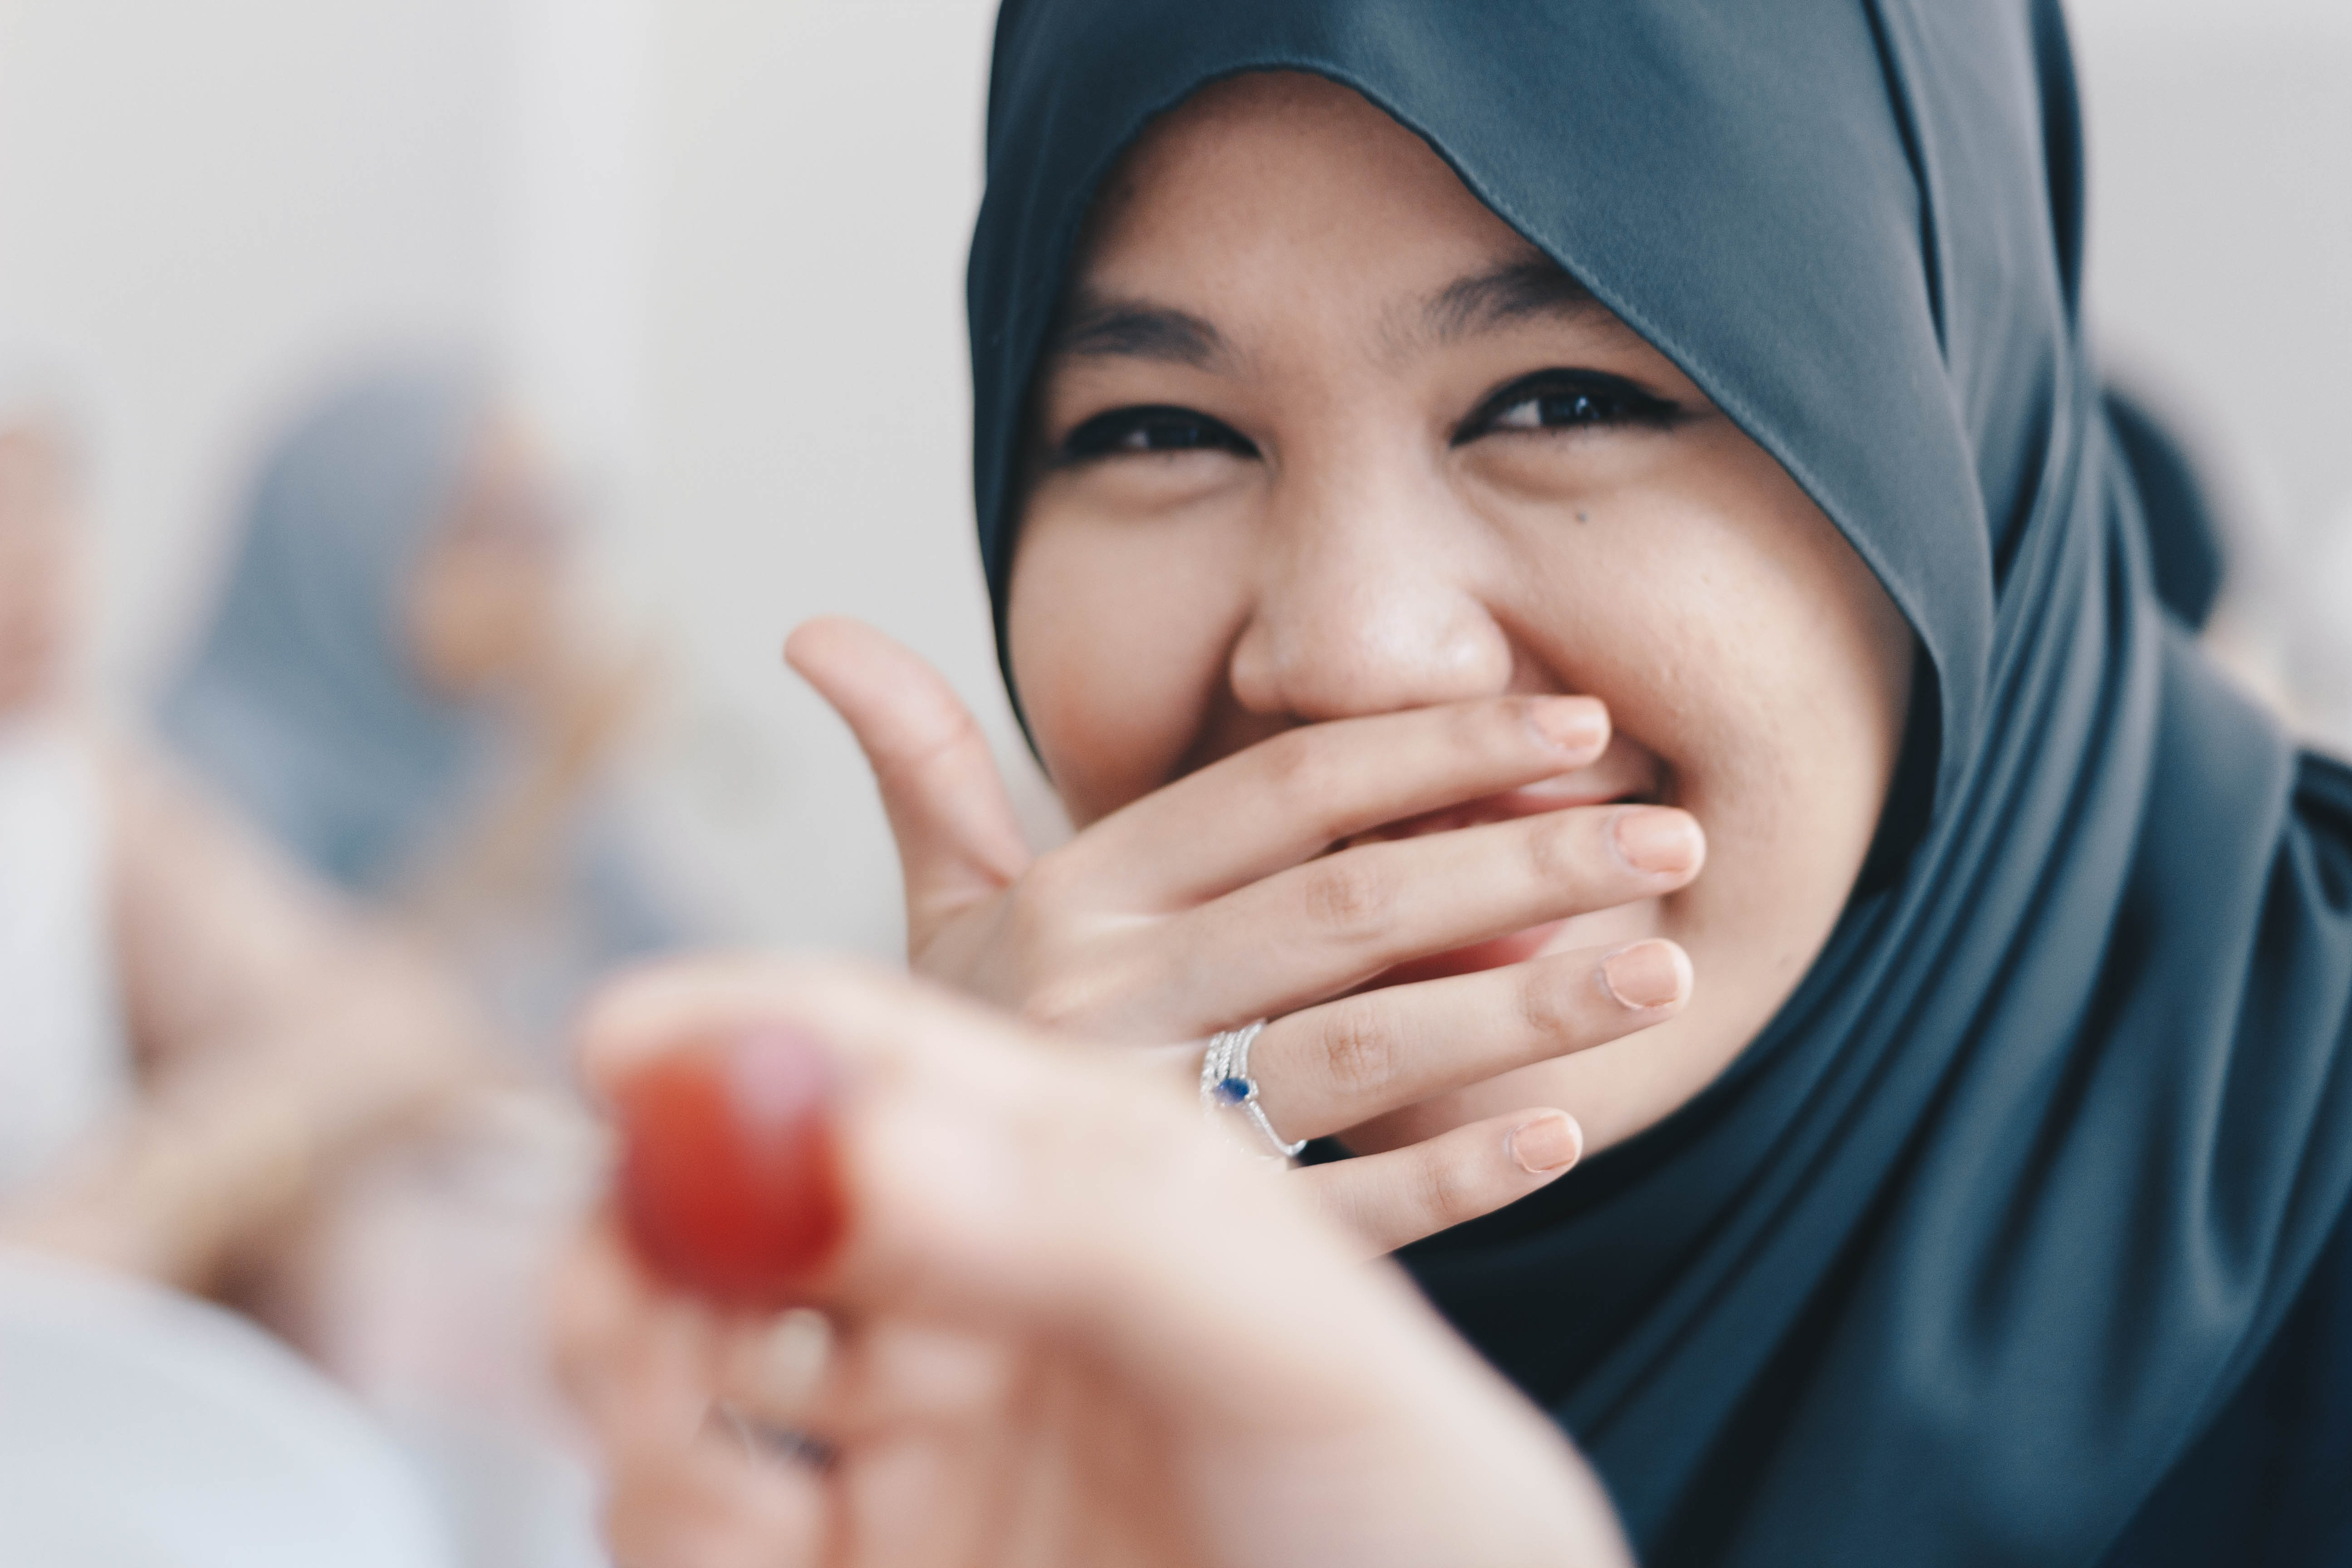 woman covering her mouth while laughing